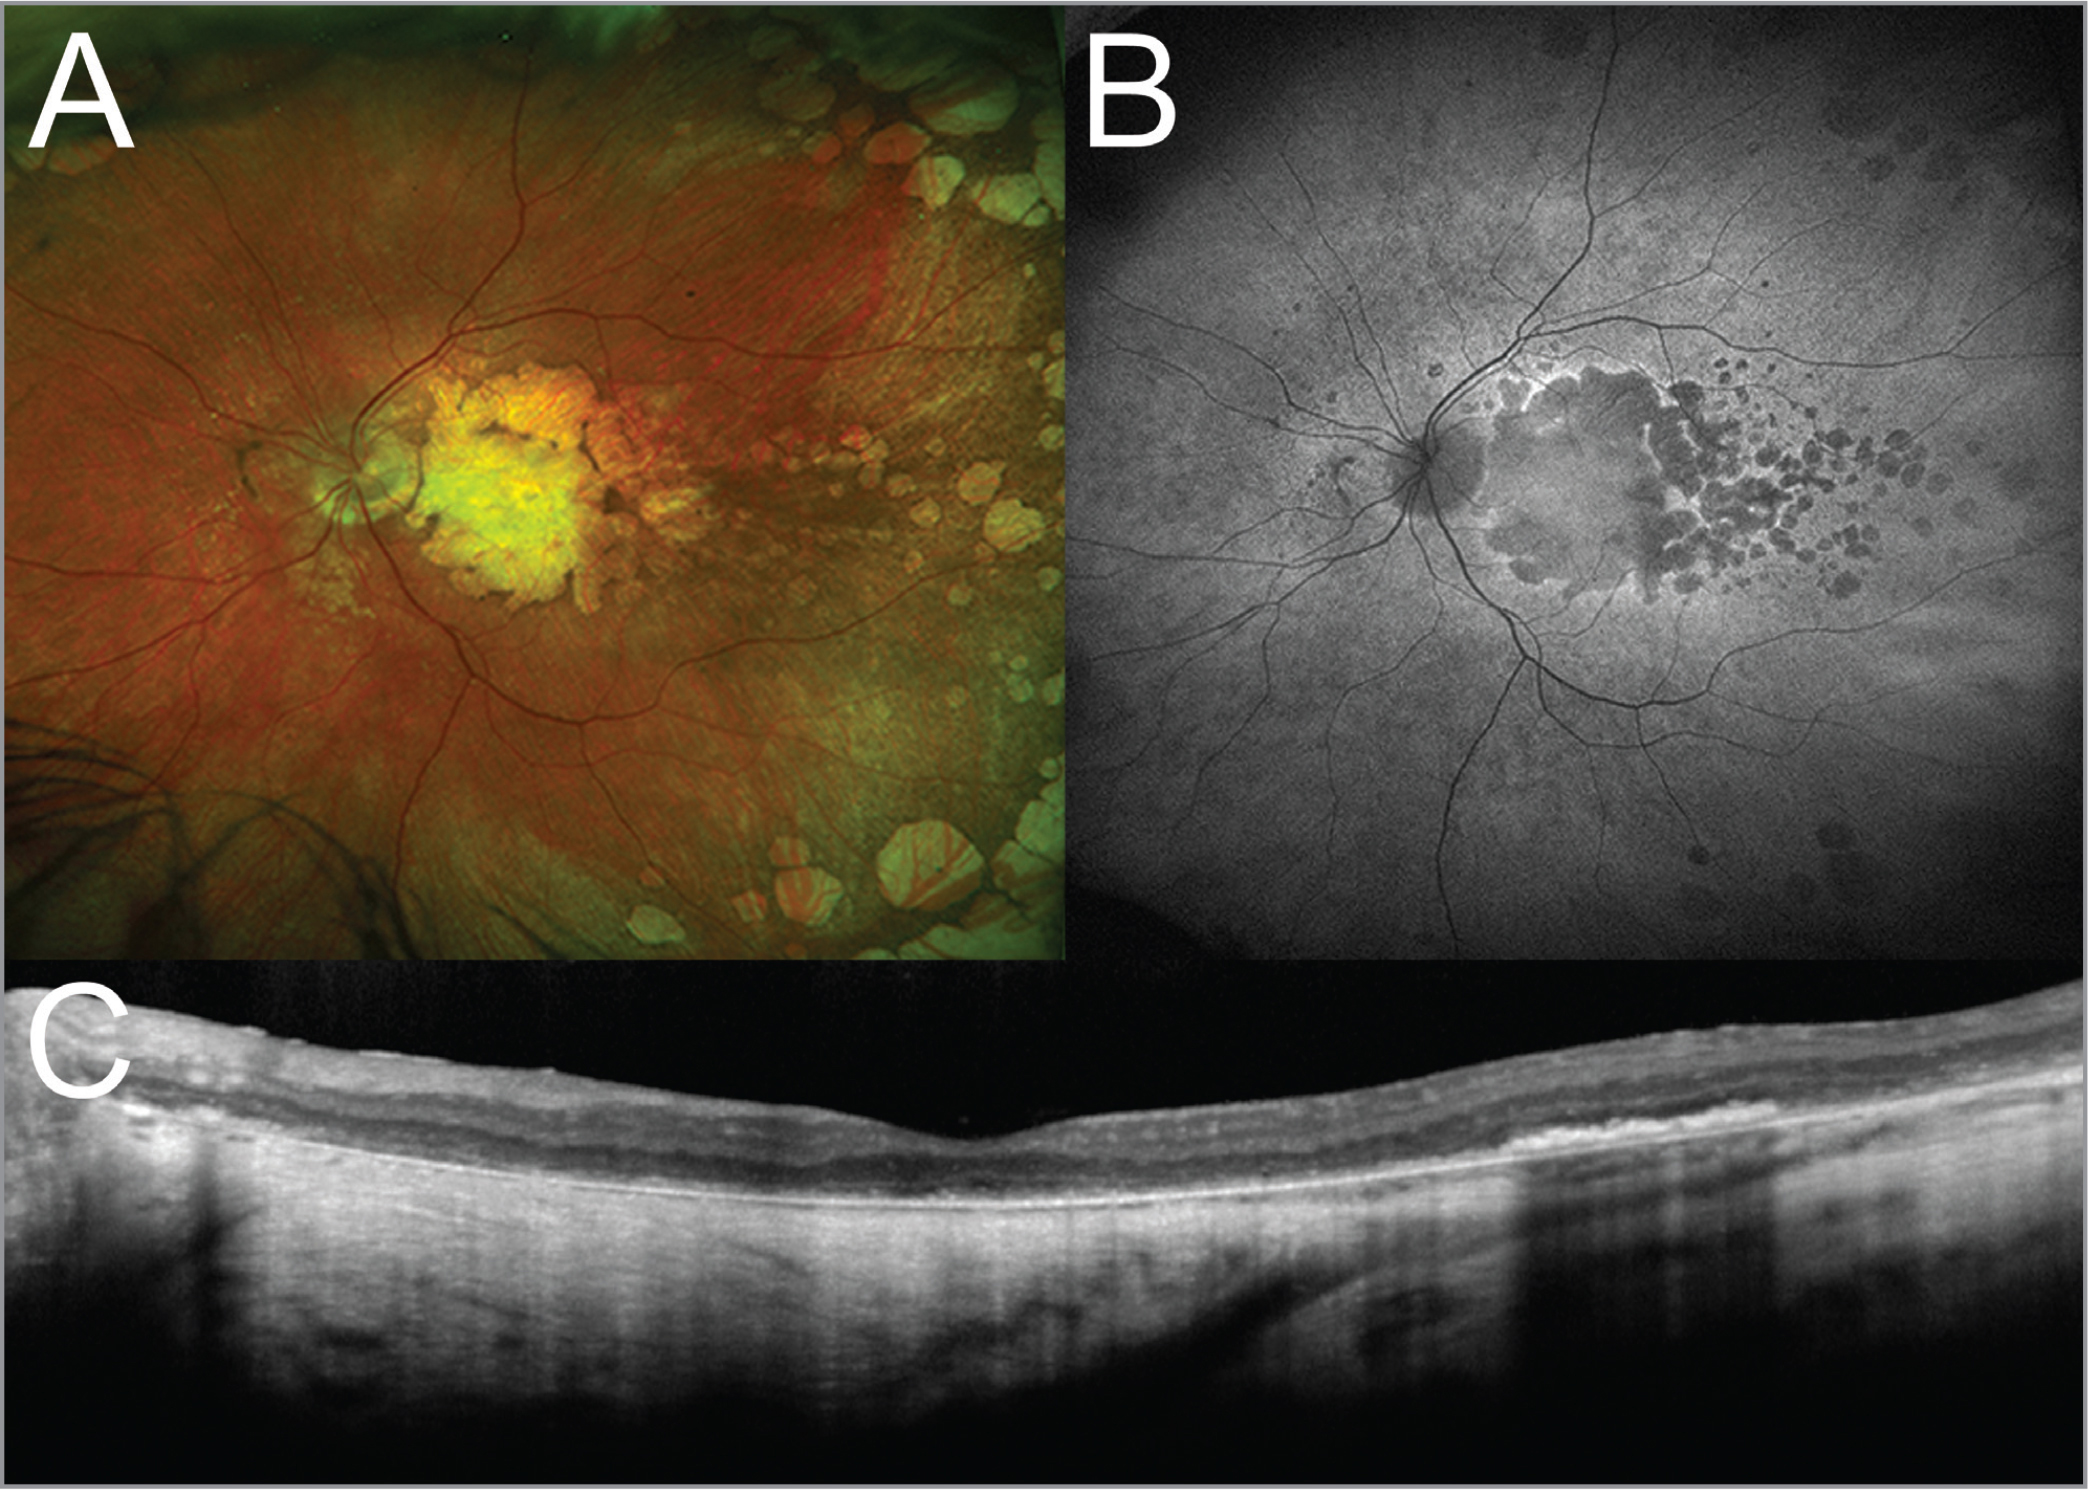 (A) Widefield pseudocolor scanning laser ophthalmoscopy revealed scalloped, atrophic patches in the macula and in the far periphery. (B) Widefield fundus autofluorescence imaging also reflected these findings with well-demarcated regions of hypoautofluorescence. (C) Optical coherence tomography imaging revealed diffuse atrophy of the outer retina, retinal pigment epithelium, and choroid. There was no evidence of current or prior choroidal neovascularization. Findings were comparable between eyes.